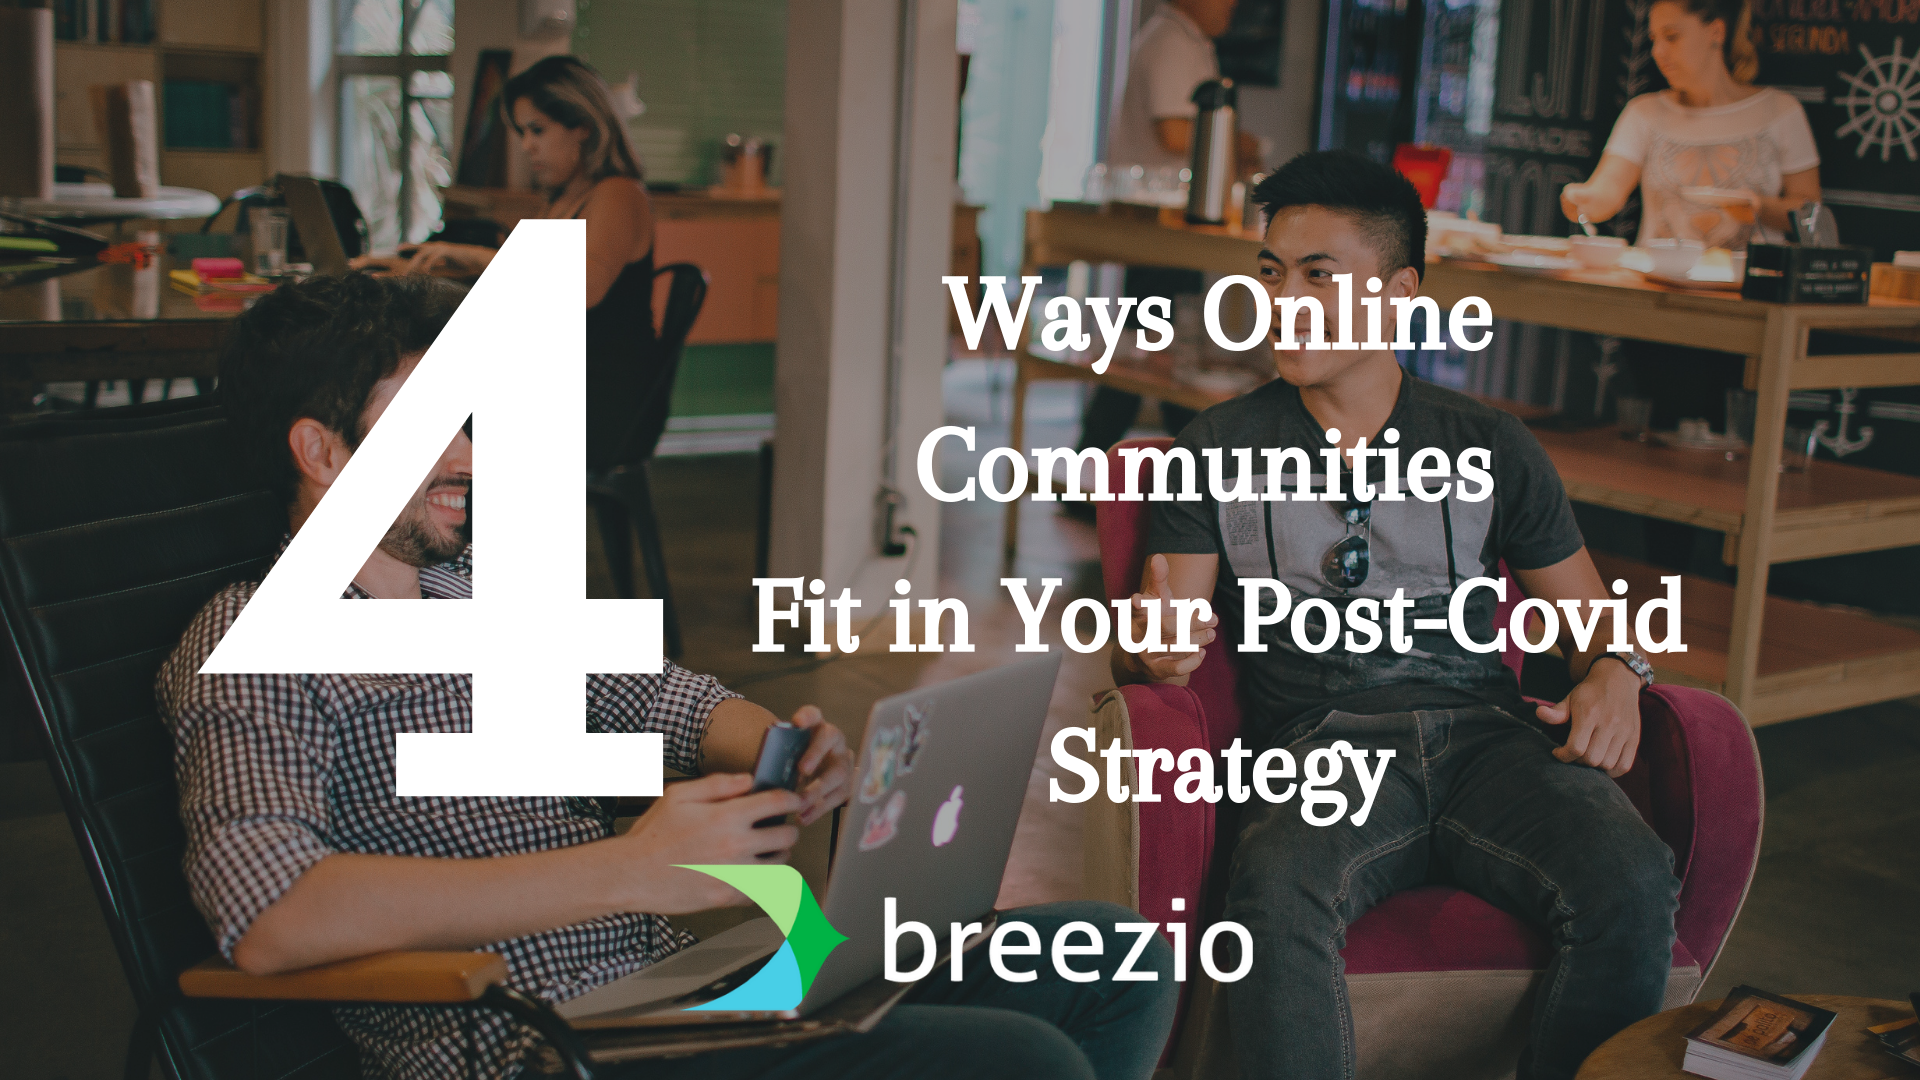 Ways Online Communities Fit in Your Post-Covid Strategy